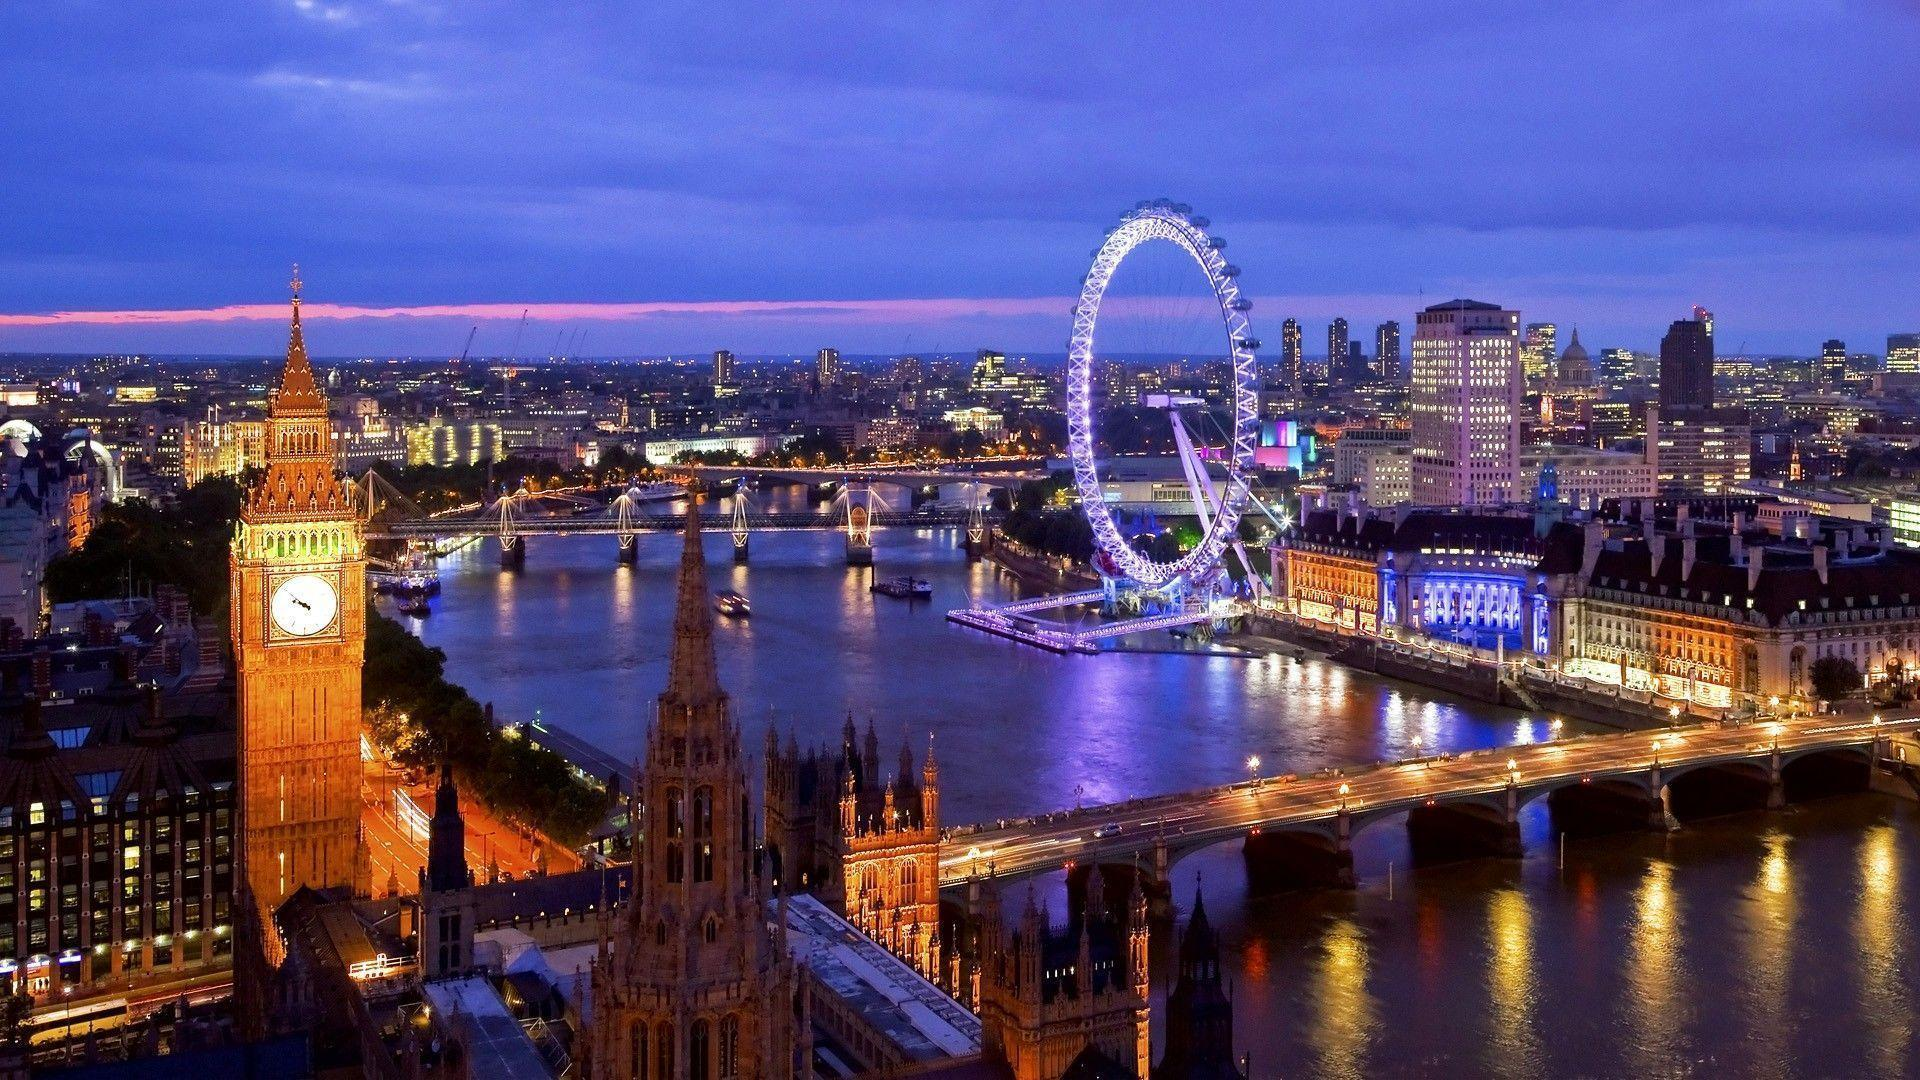 London Desktop Wallpapers Top Free London Desktop